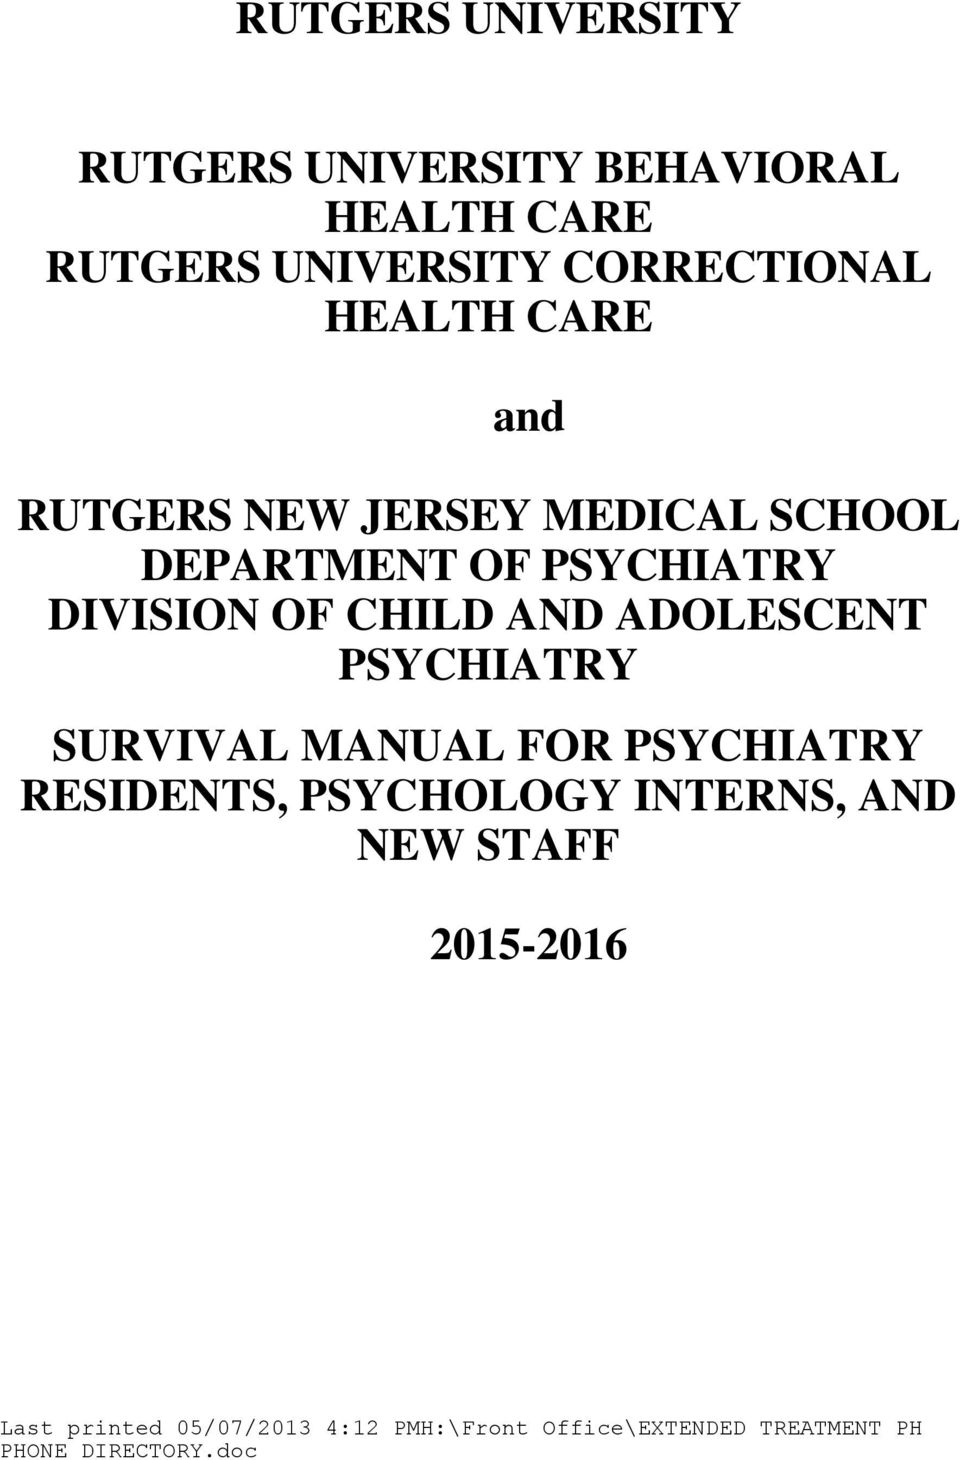 THE FACULTY AND STAFF OF RUTGERS UNIVERSITY BEHAVIORAL